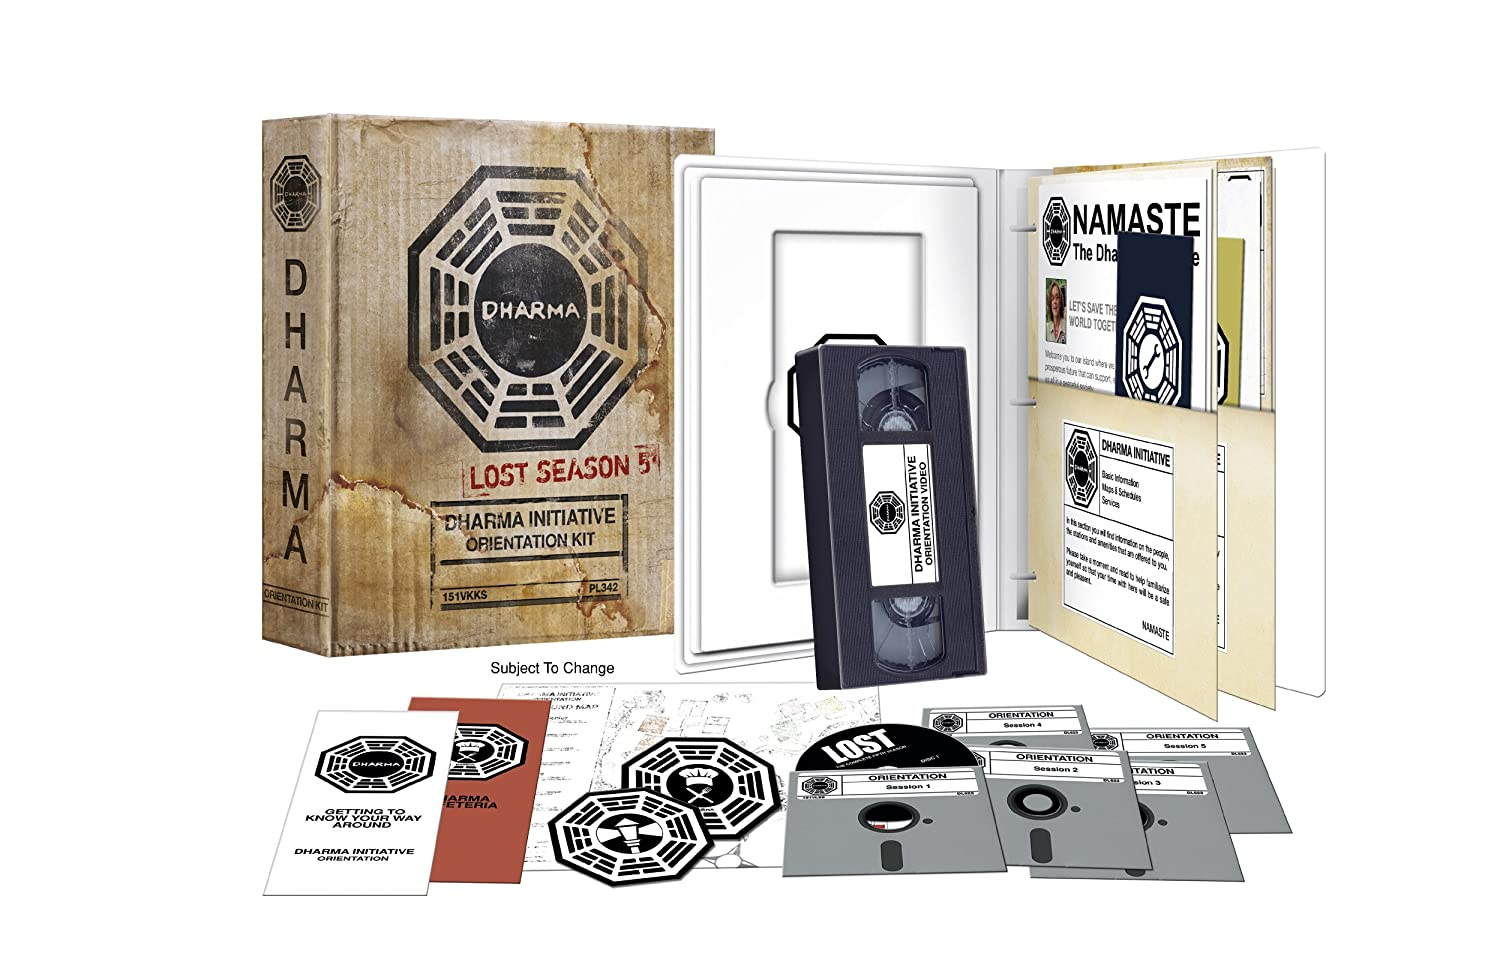 Amazon.com: Lost: Season 5 Dharma Initiative Orientation Kit ...